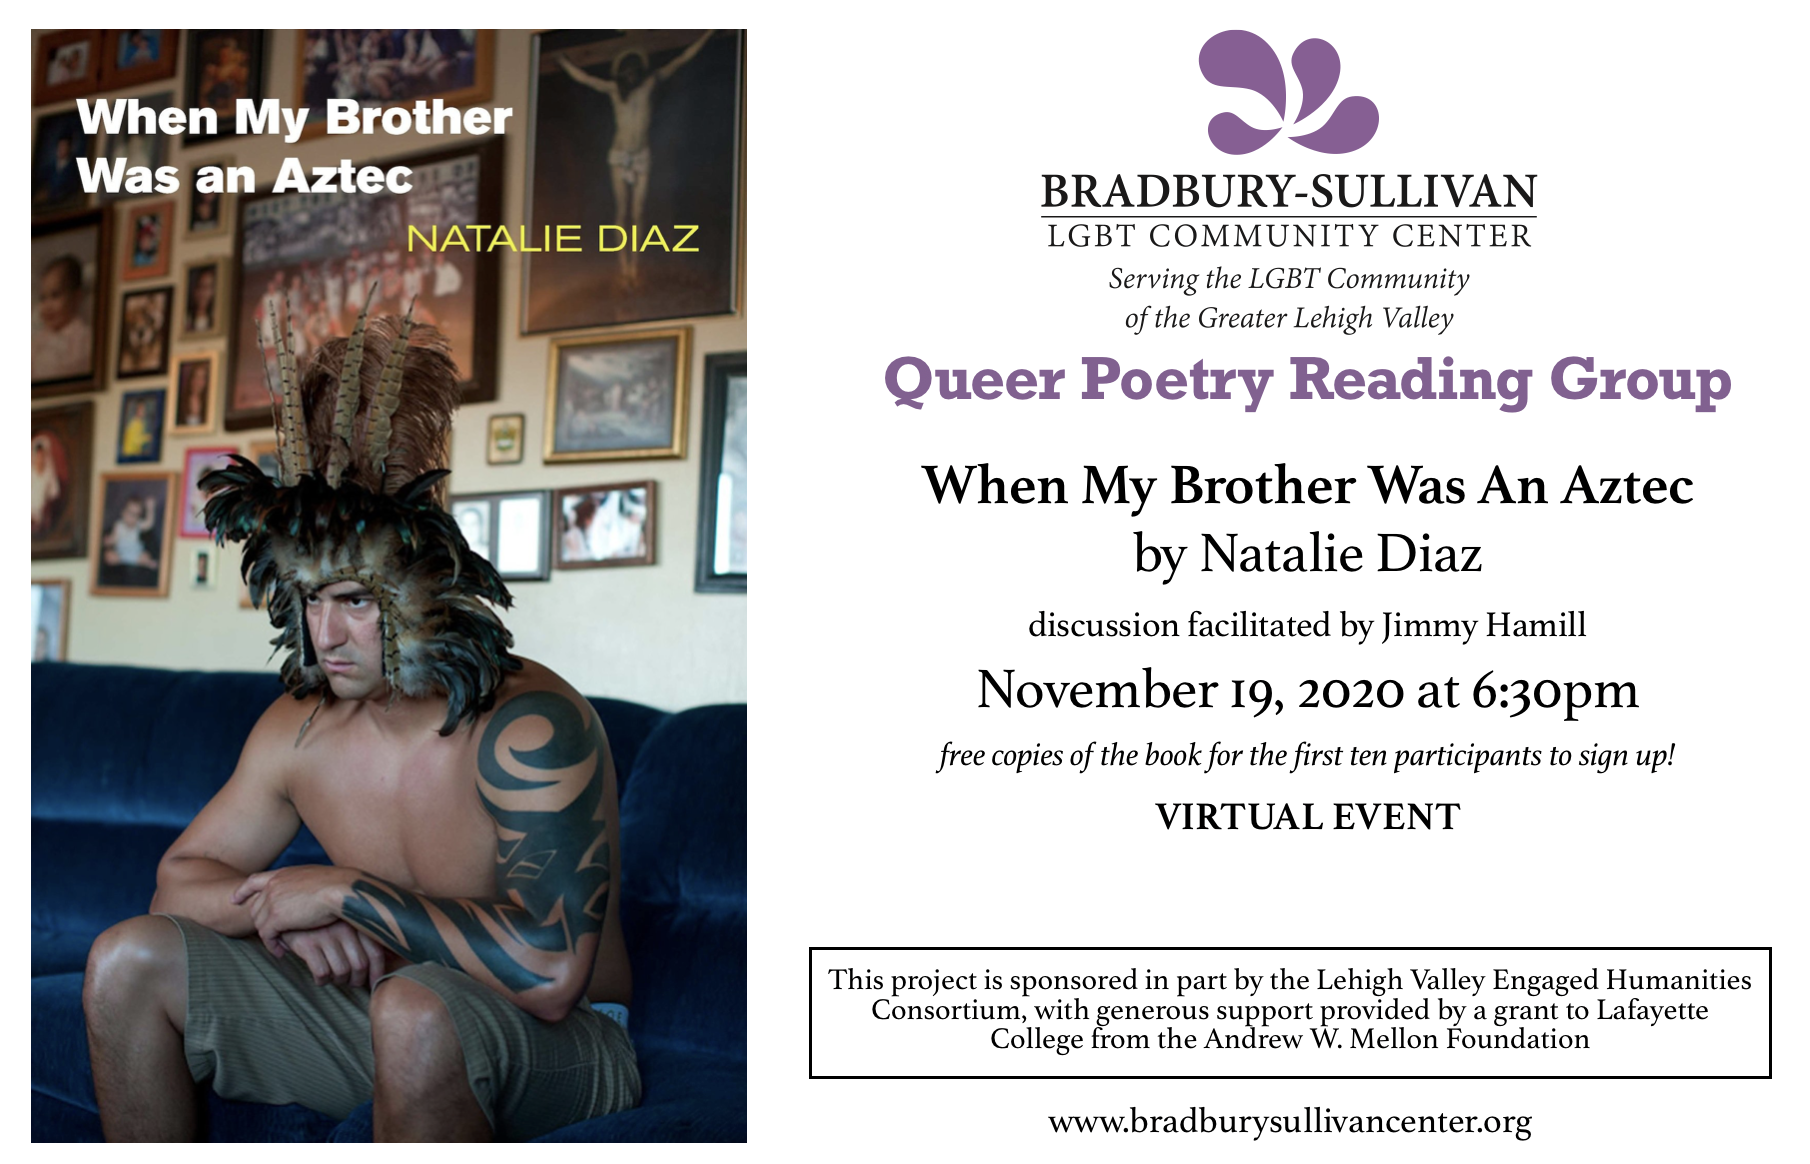 When_My_Brother_Was_An_Aztec_-__Queer_Poetry_Reading_Group.png